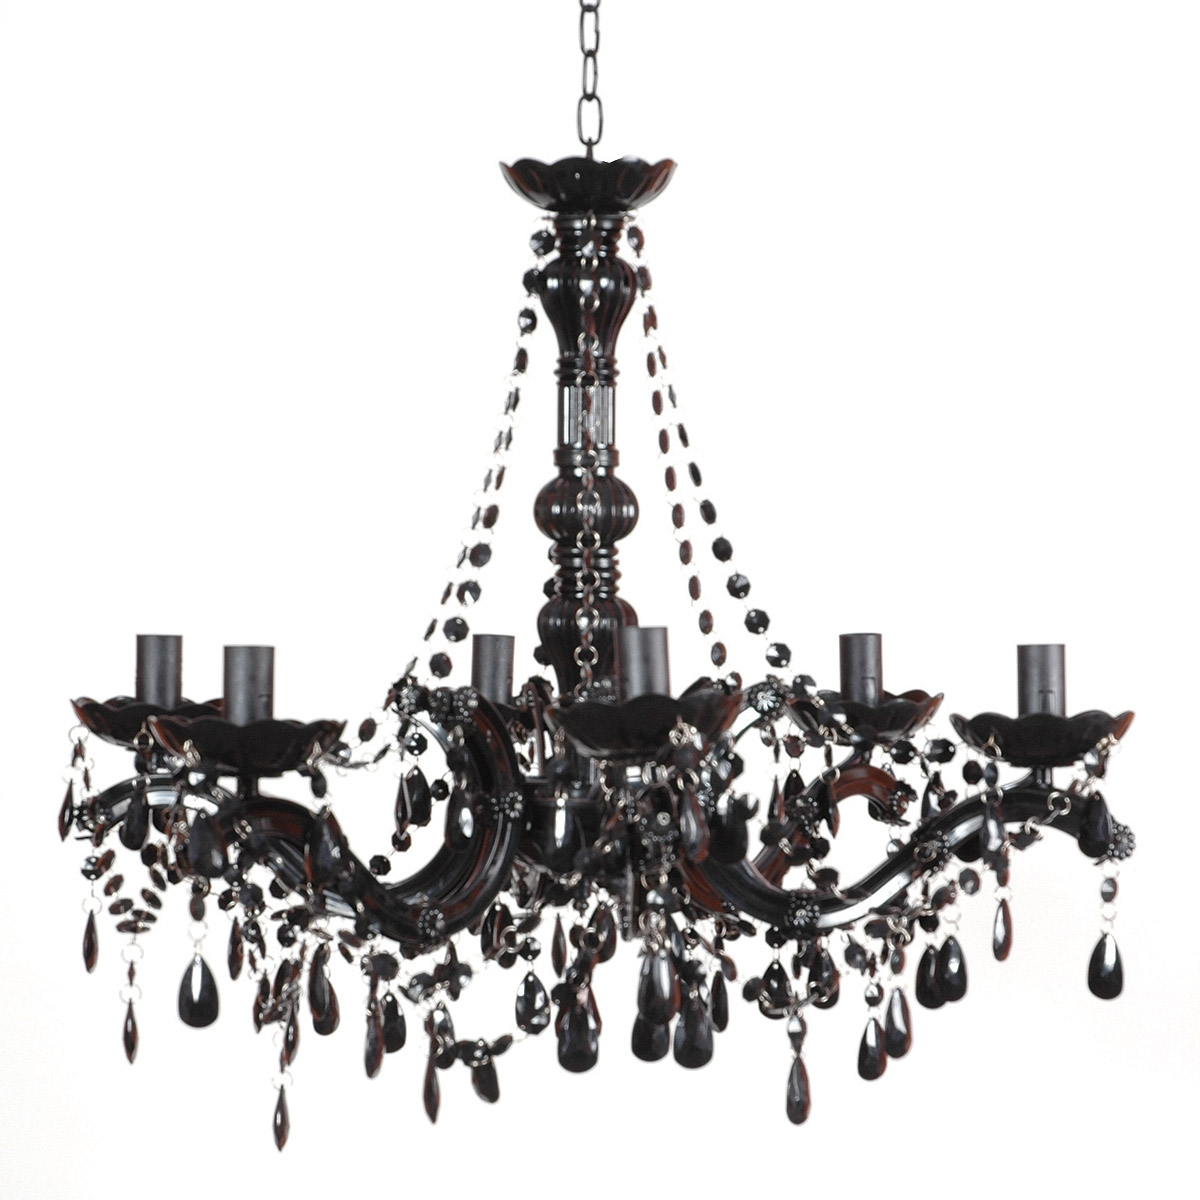 Small Chandeliers For Large Size Of Crystal And Black Chandelier In Large Black Chandelier (#12 of 12)